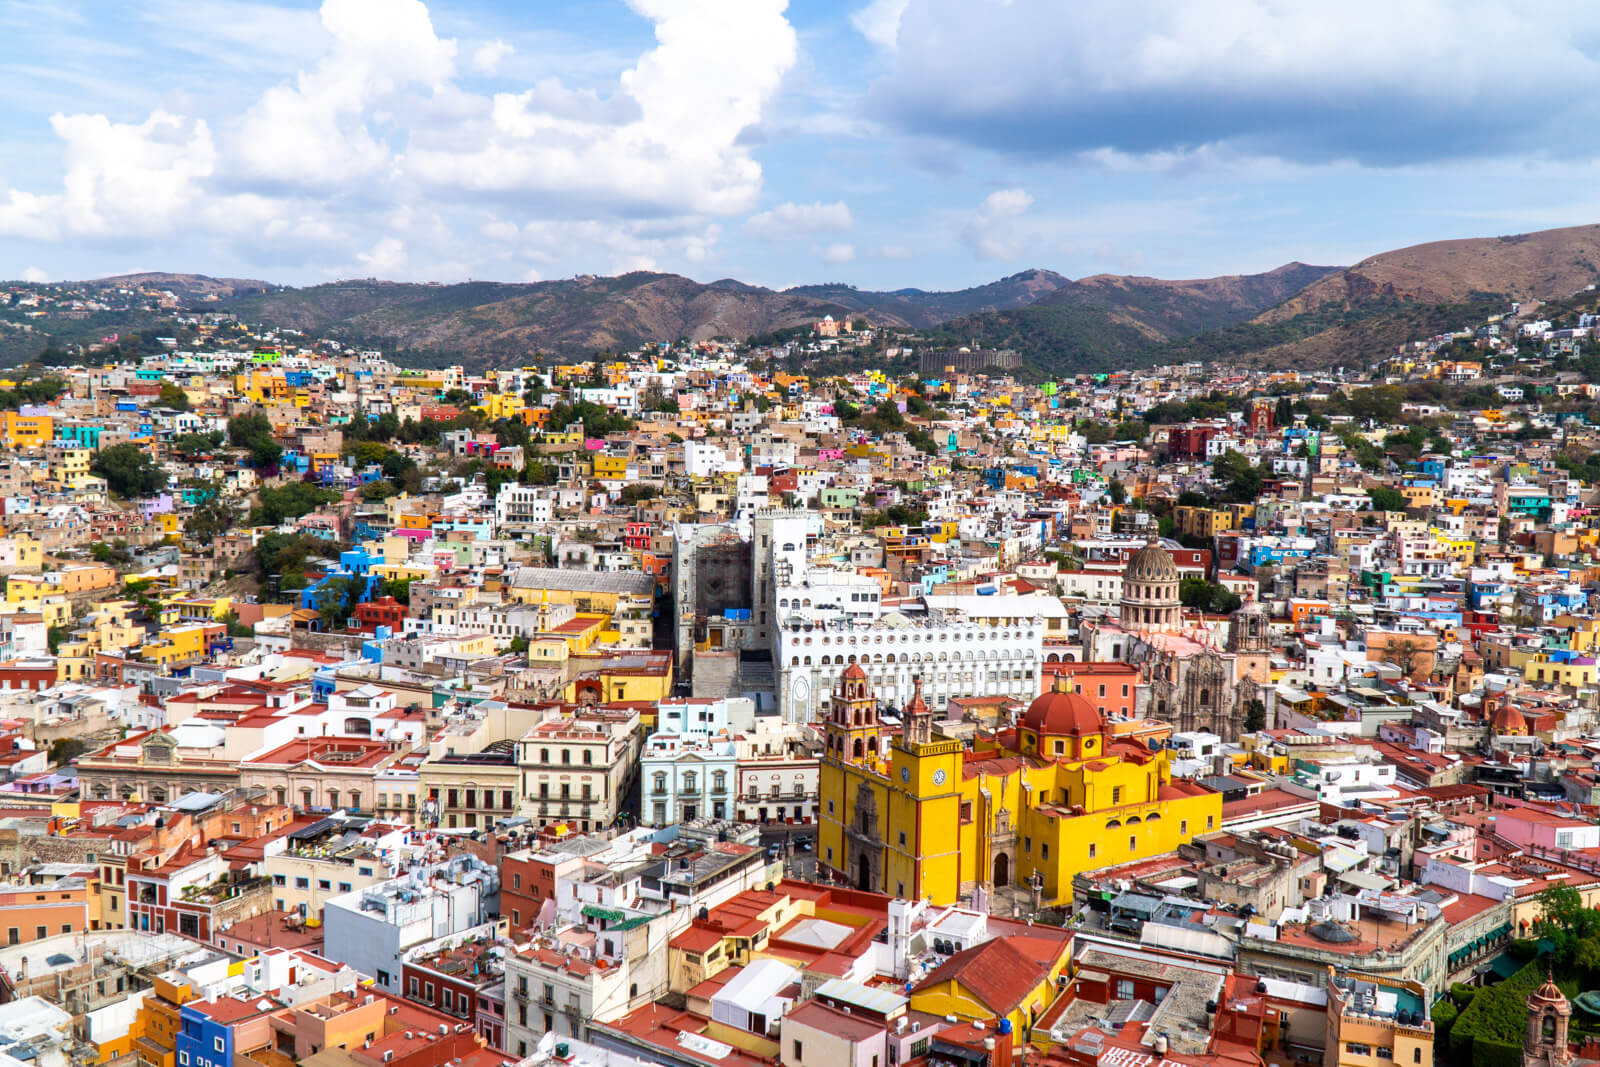 Guanajuato City as seen from the Pipila Lookout